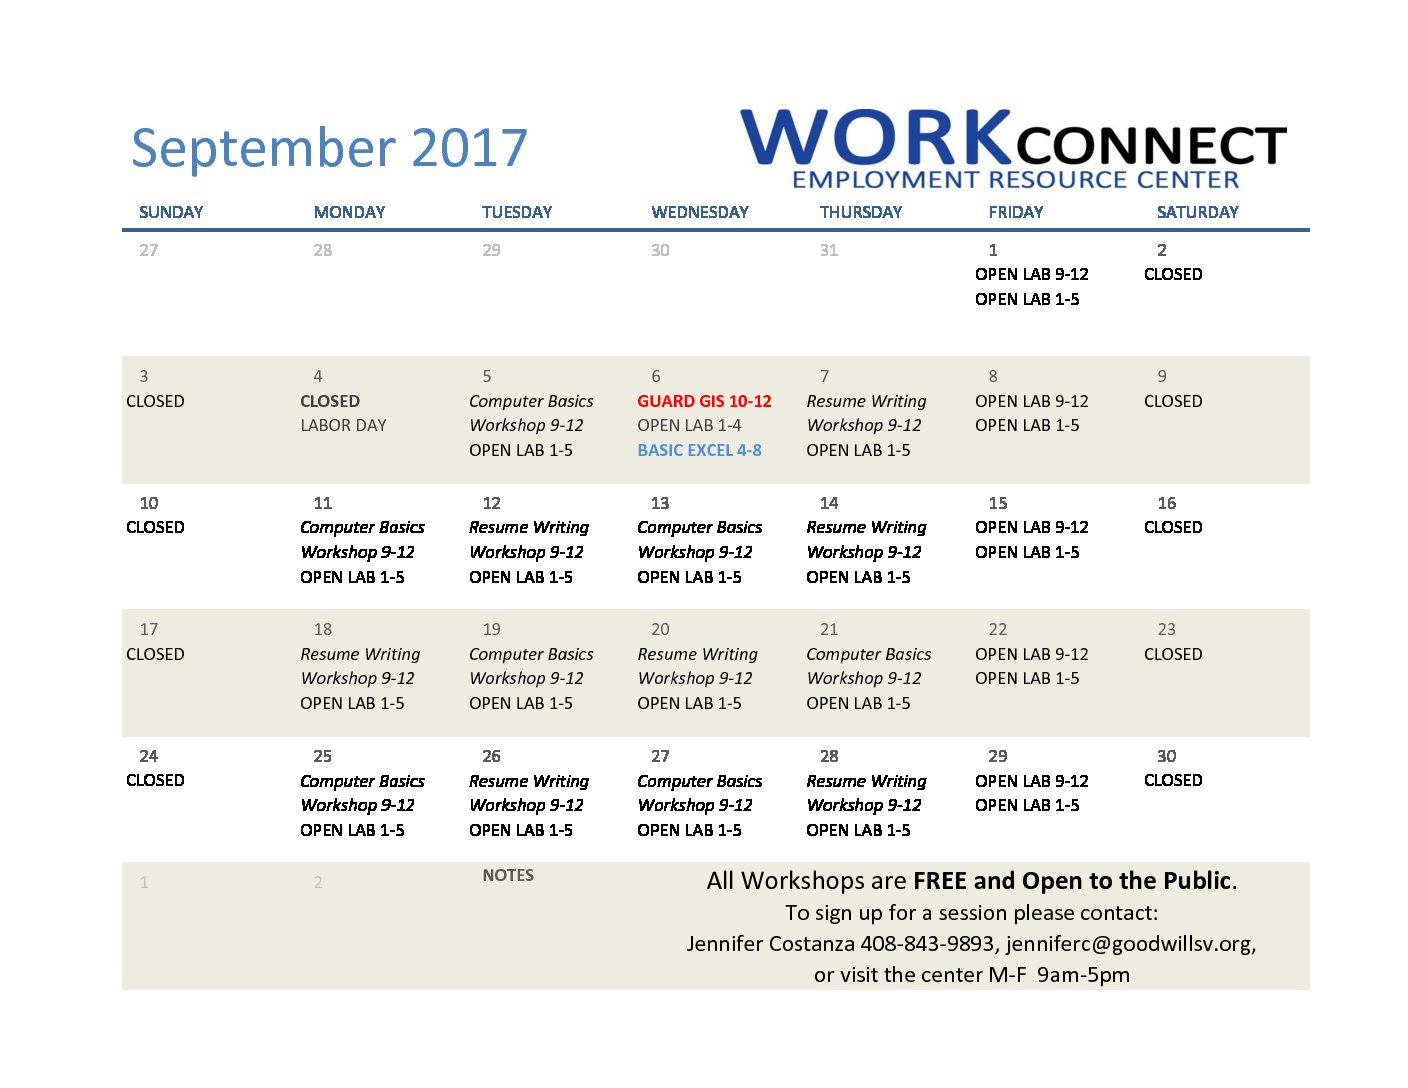 September Workshop Calendar Goodwill Of Silicon Valley